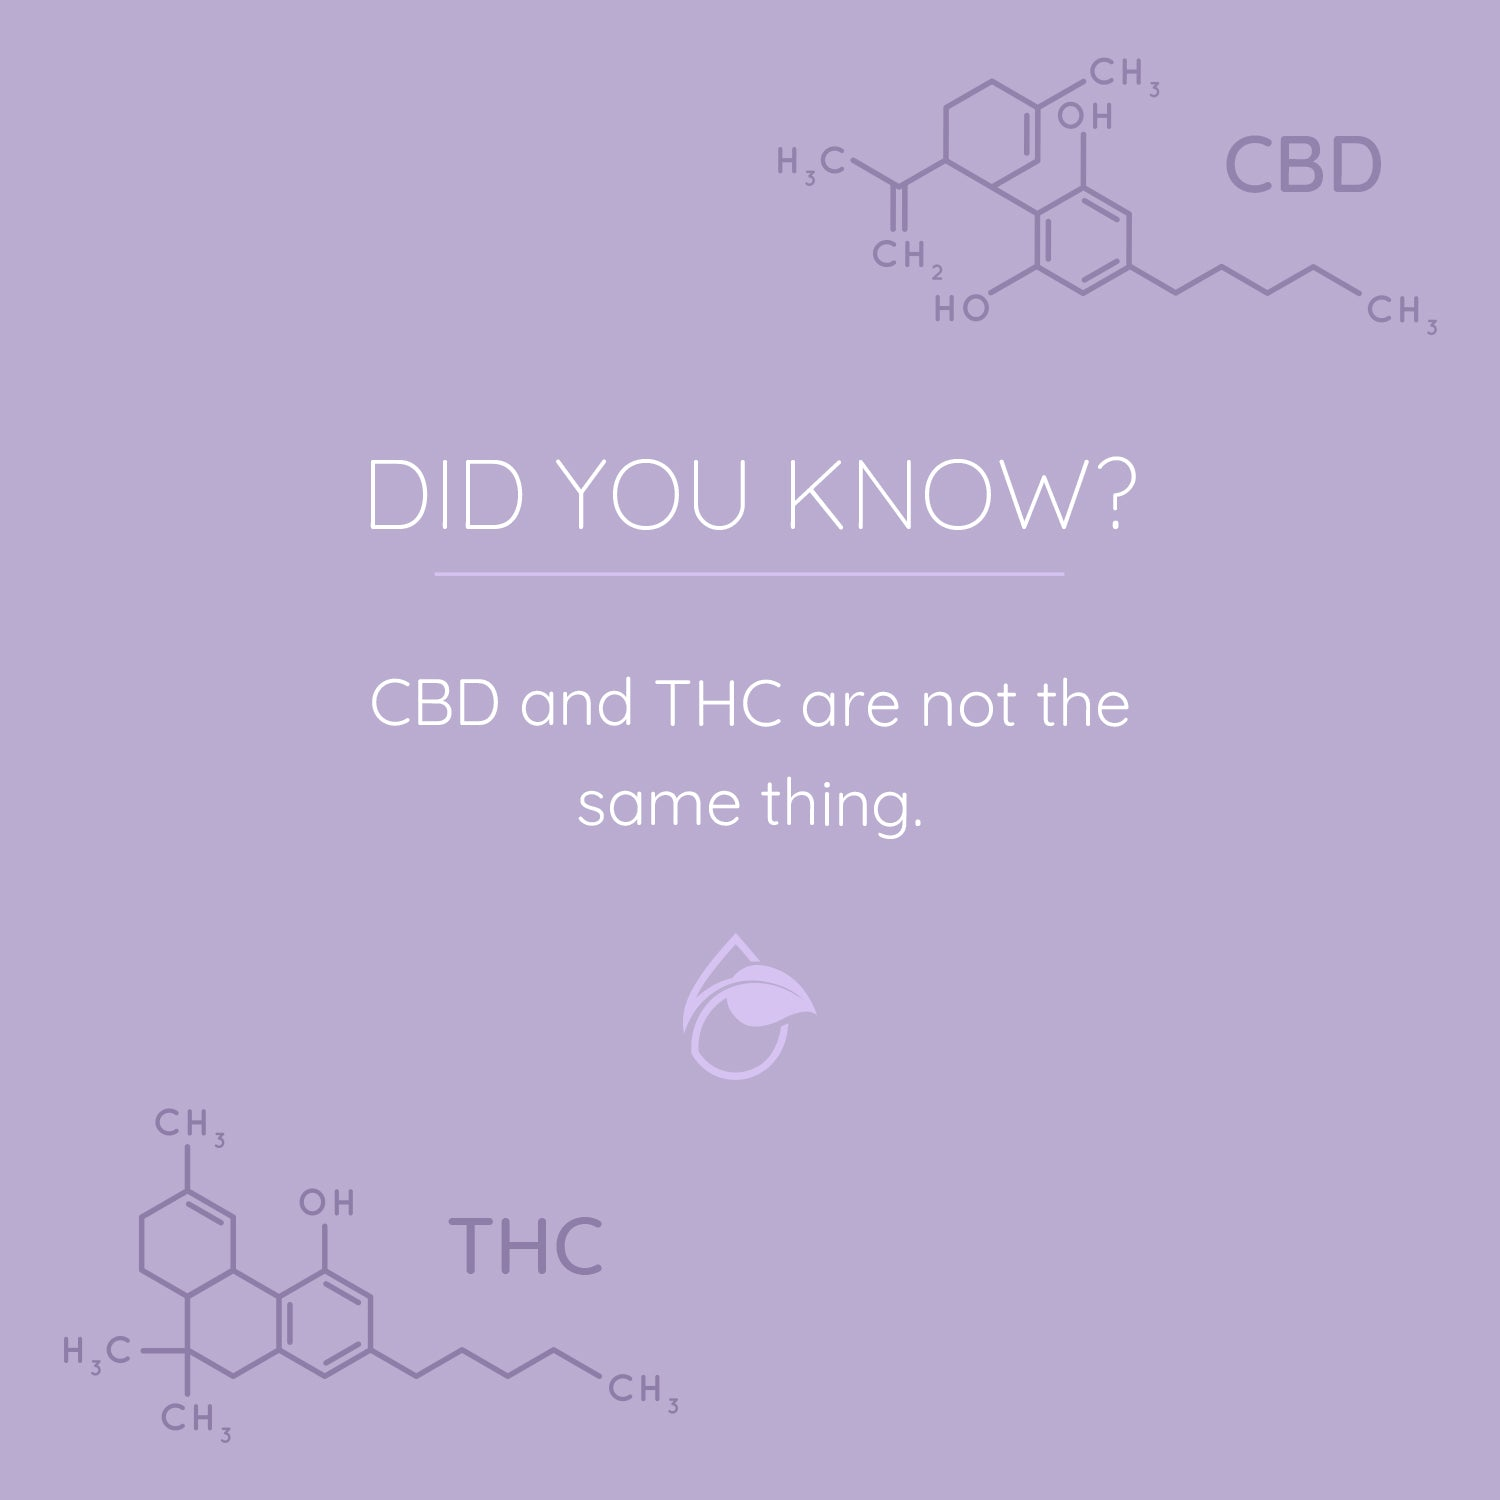 DYK - CBD is Not THC